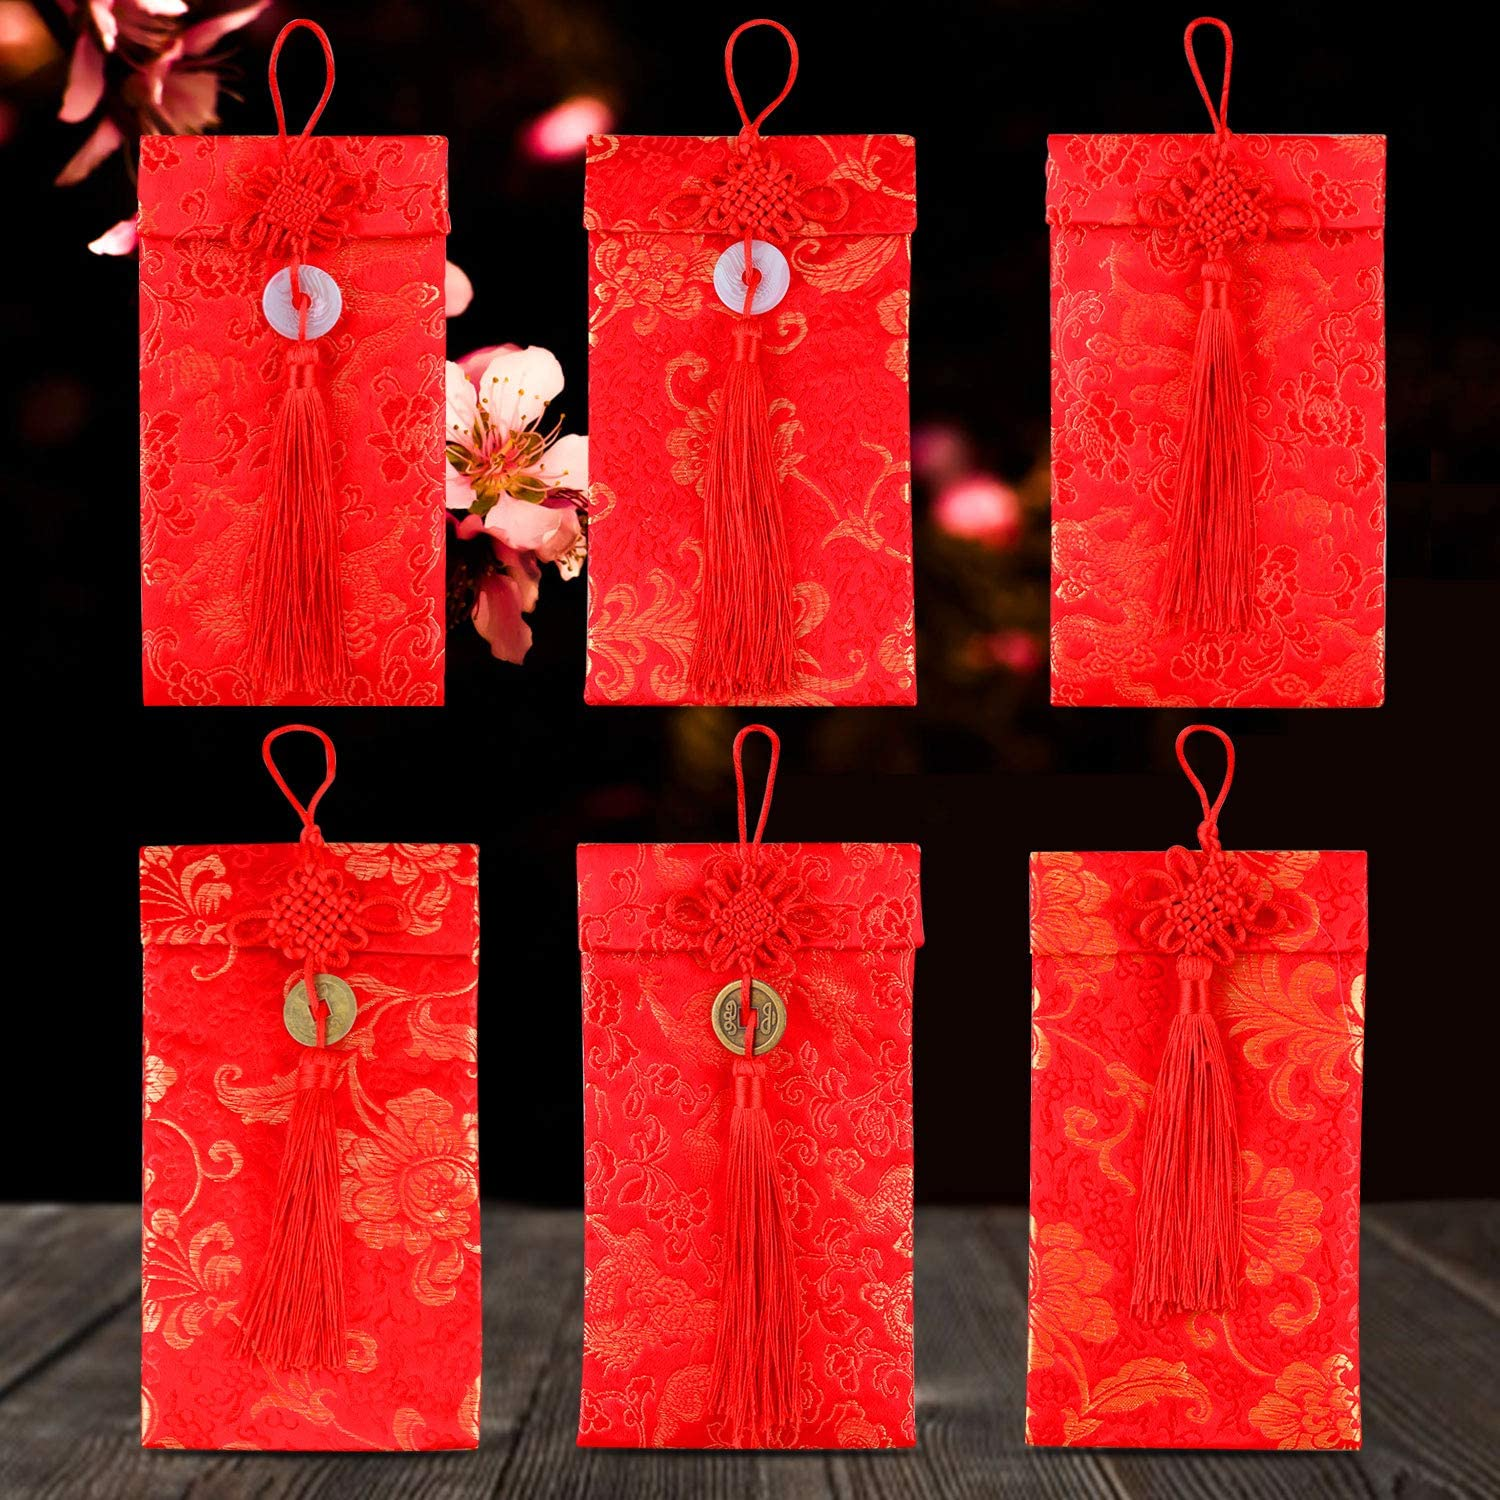 Spring Festival Brocade Red Envelope Chinese New Year Red Packet Lucky Money